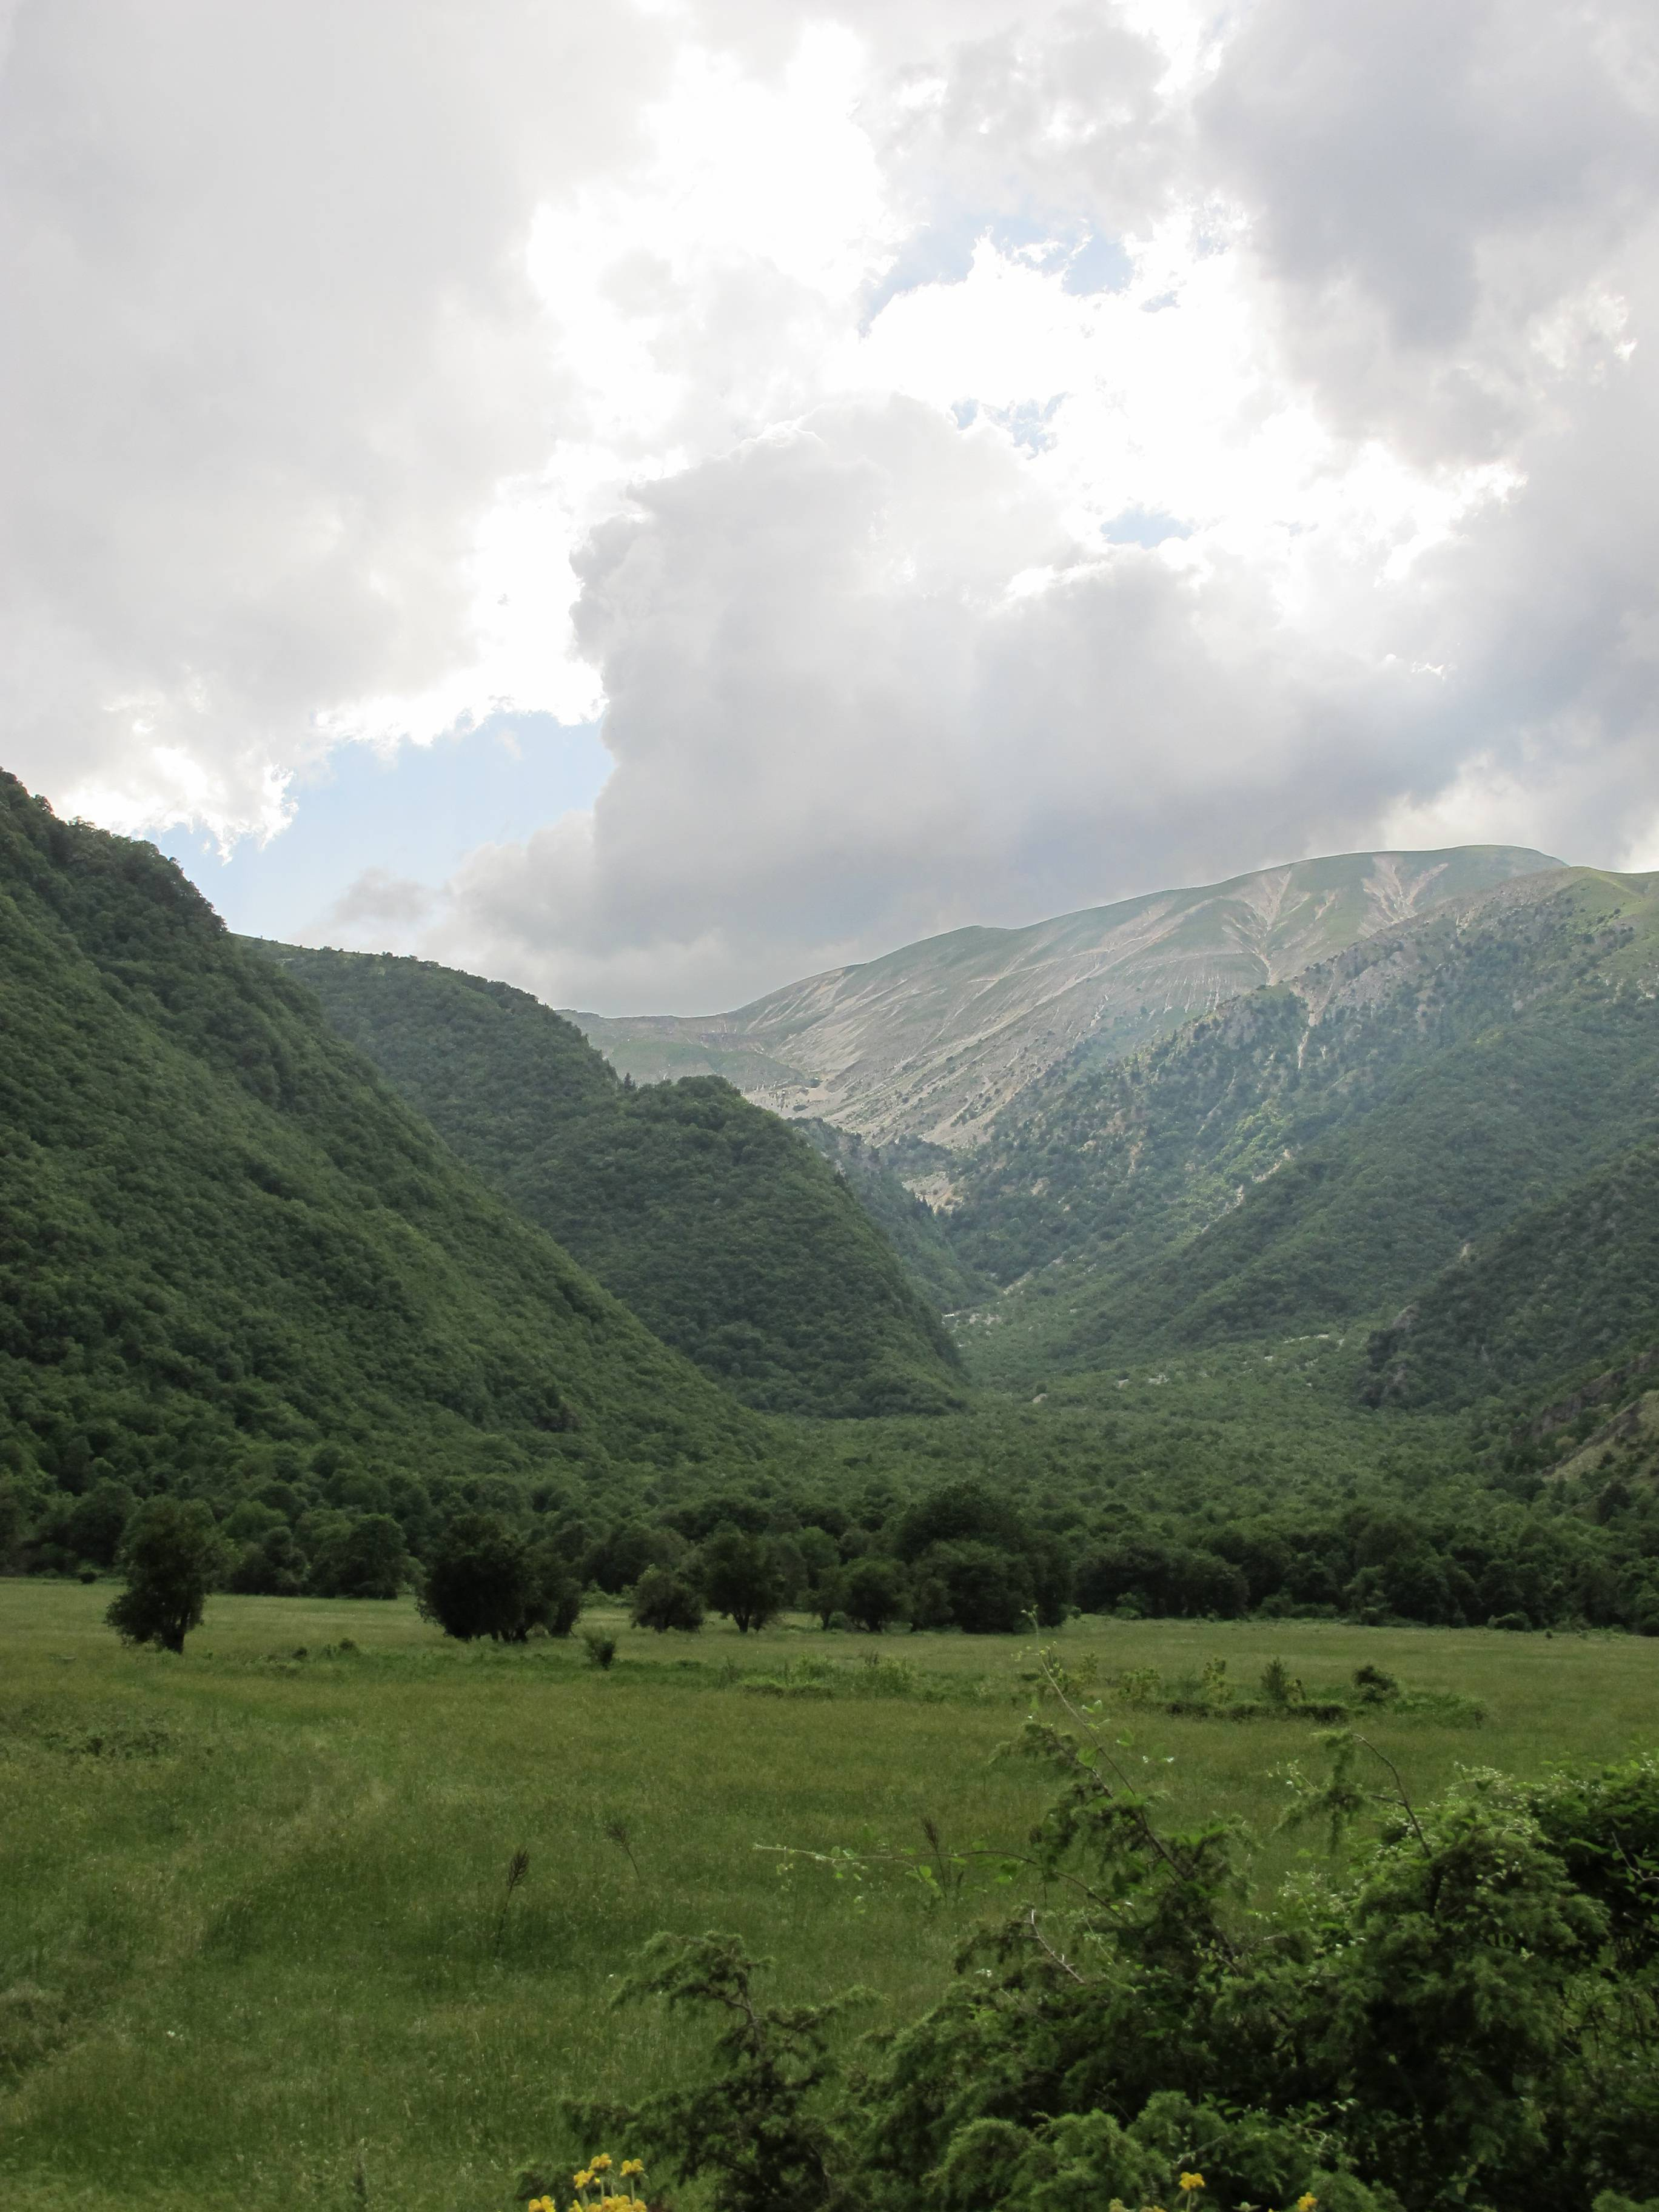 SPA Douskon mountain, Oraiokastro, Meropi forest, Gormou valley and Delvinaki lakes (HOS/V. Saravia)